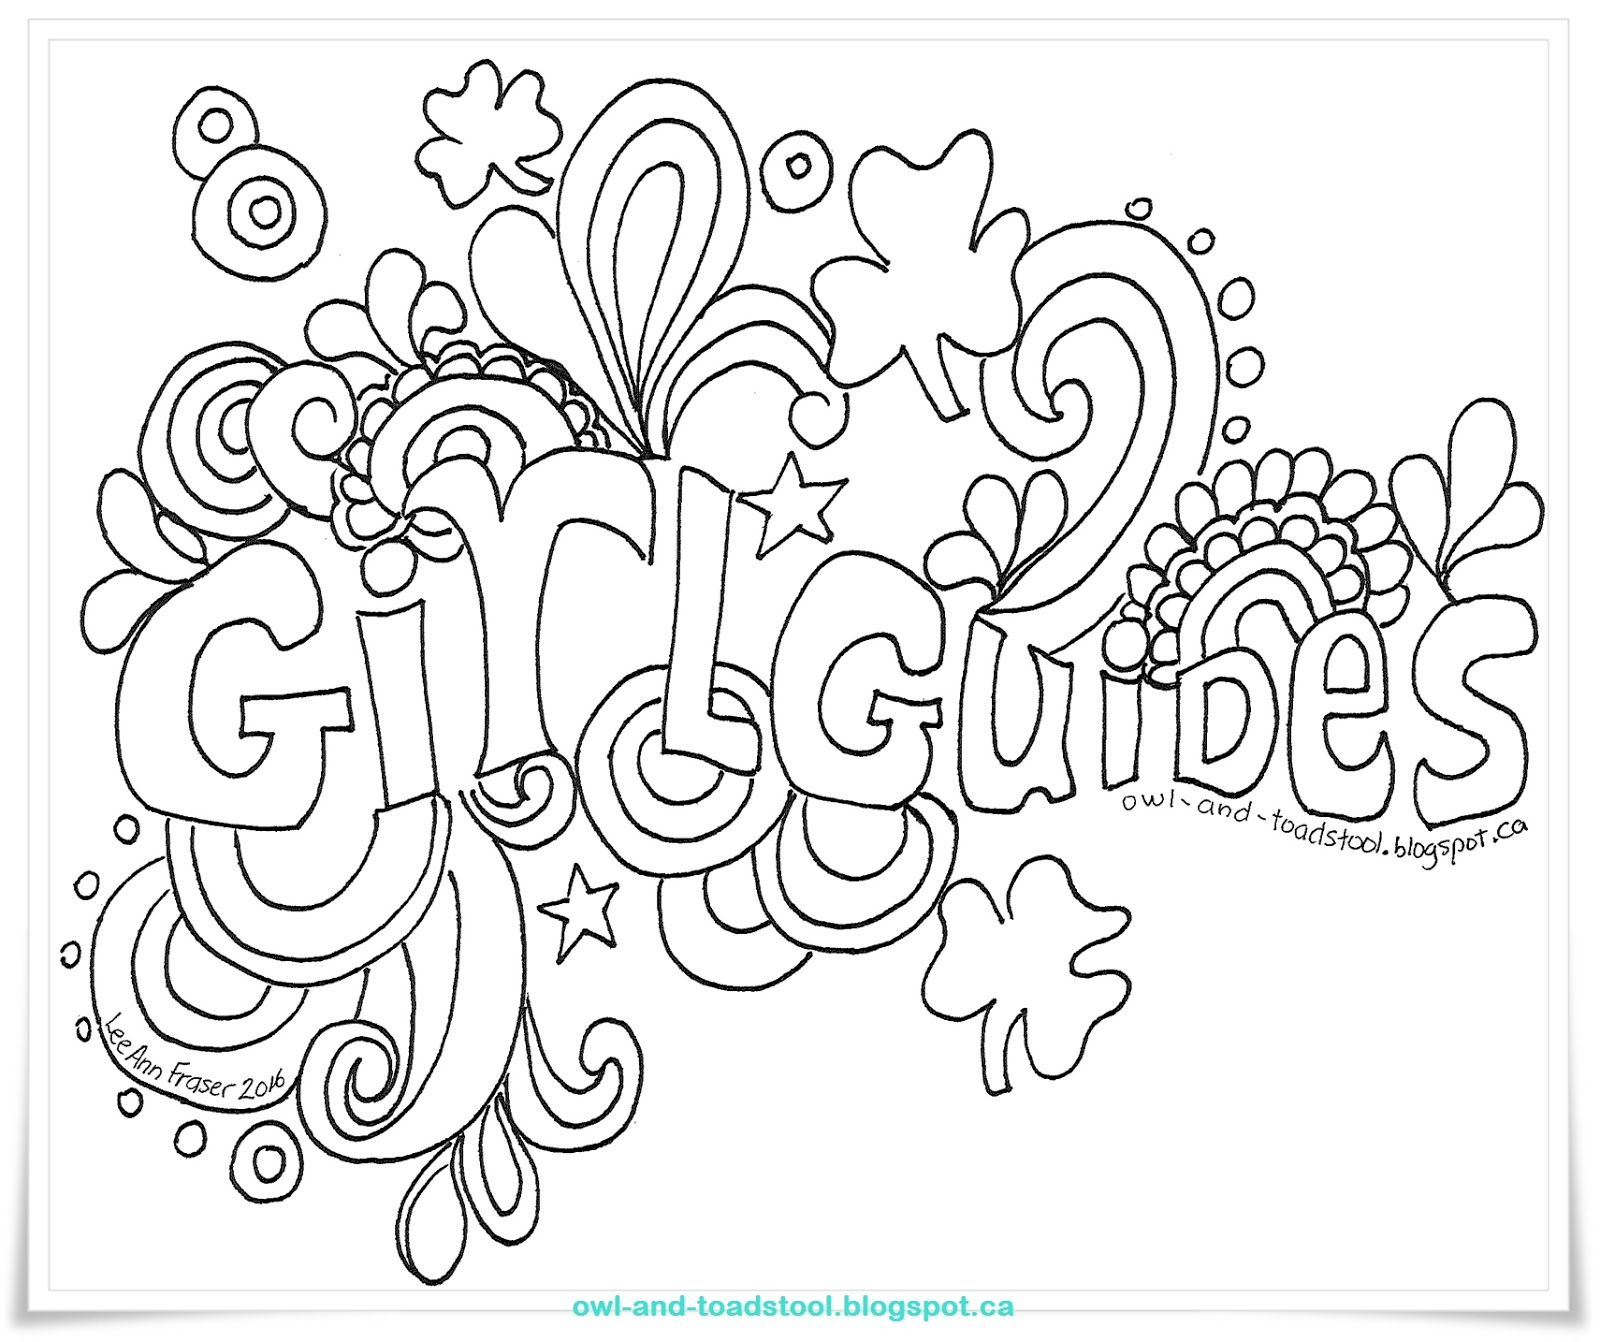 Owl & Toadstool: Doodle- Girl Guides